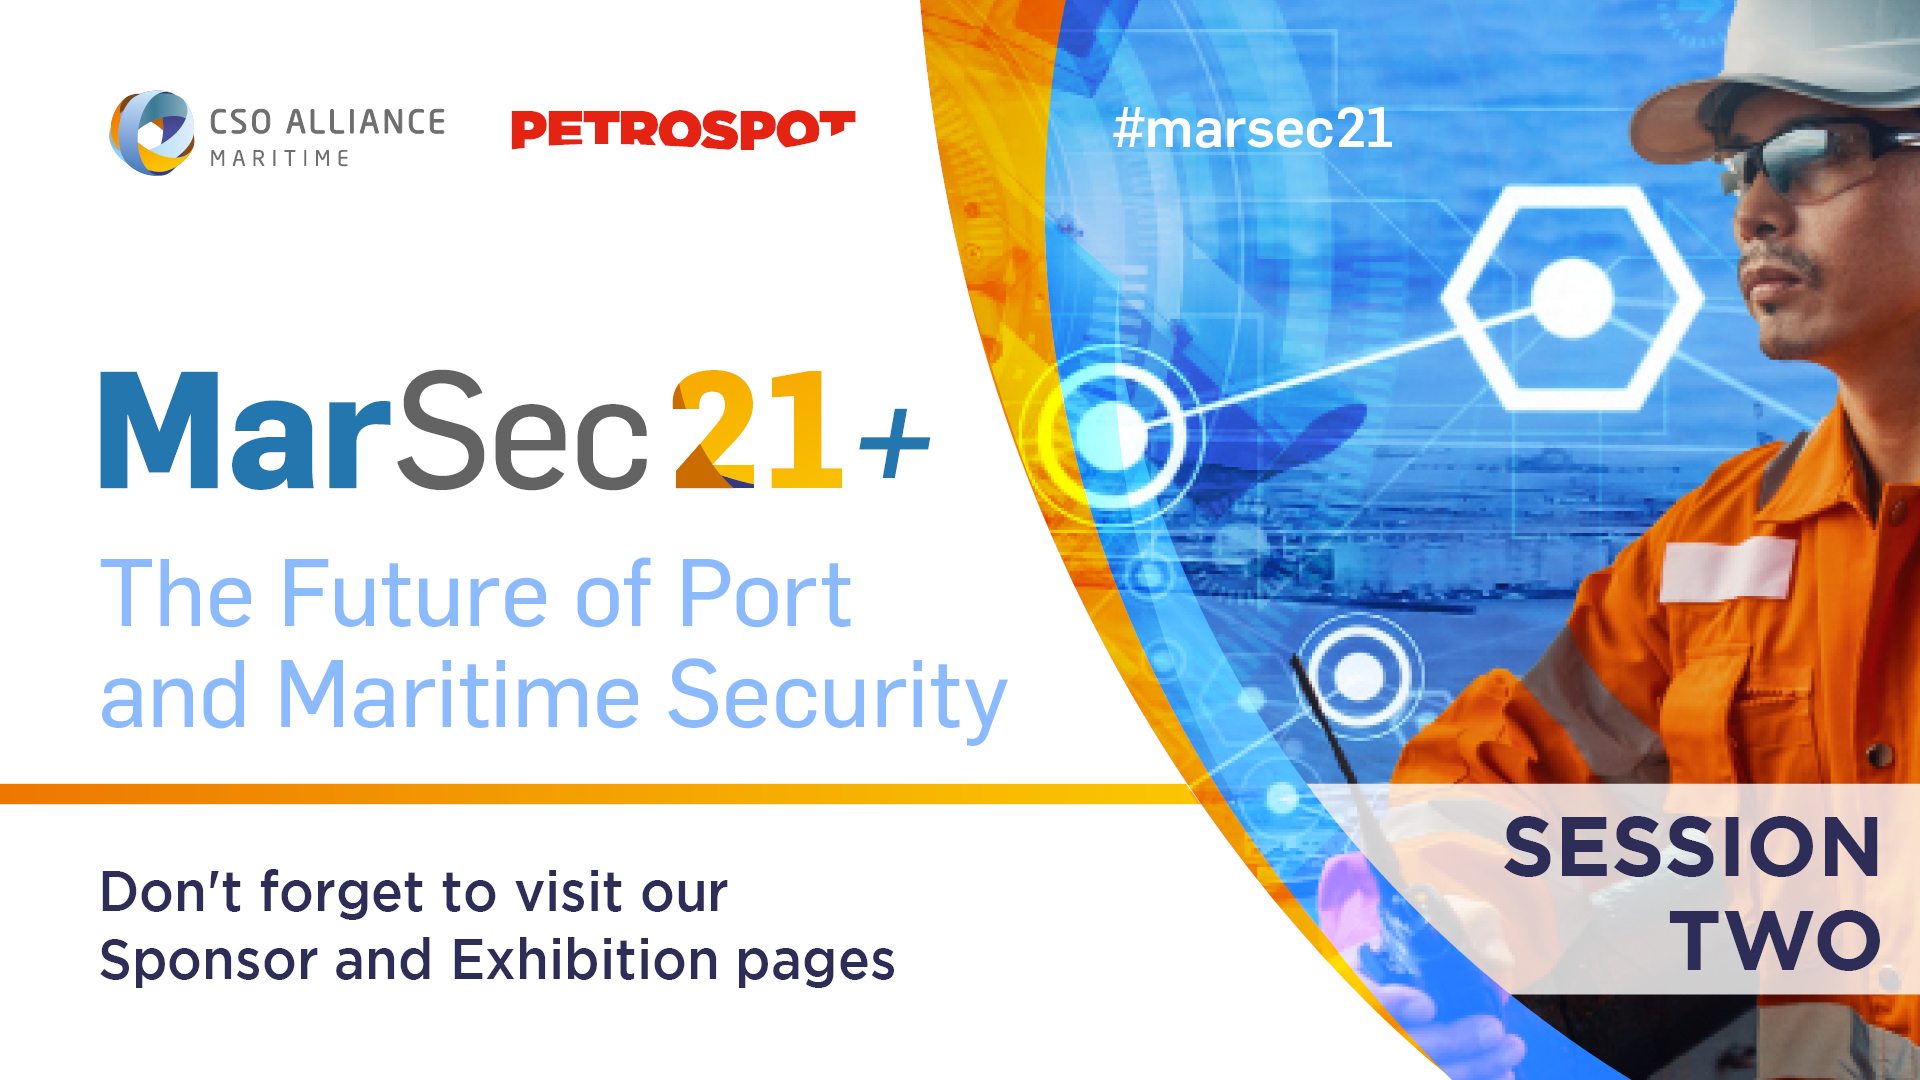 MarSec 21+ Session 2: Threat Assessment and Building Resilience